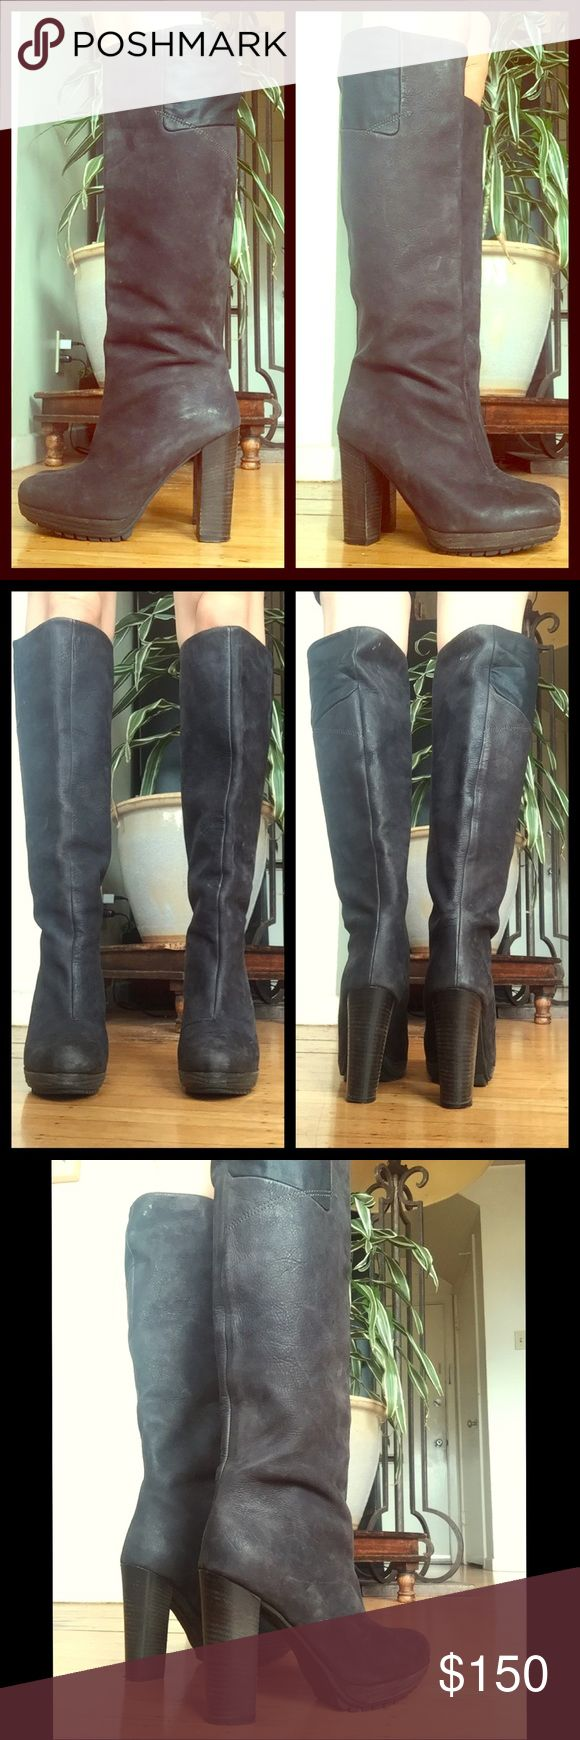 G-Star Raw Leather Knee High Heel Boots 37 These boots are unique astoundingly well made and sexy for Fall and winter nights! Made in Romania. Excellent Used condition with minimal scuffs and wear. I can't find them anywhere on the internet so I don't have much more detail to give. Will post measurements soon. Charcoal color. G-Star Shoes Heeled Boots